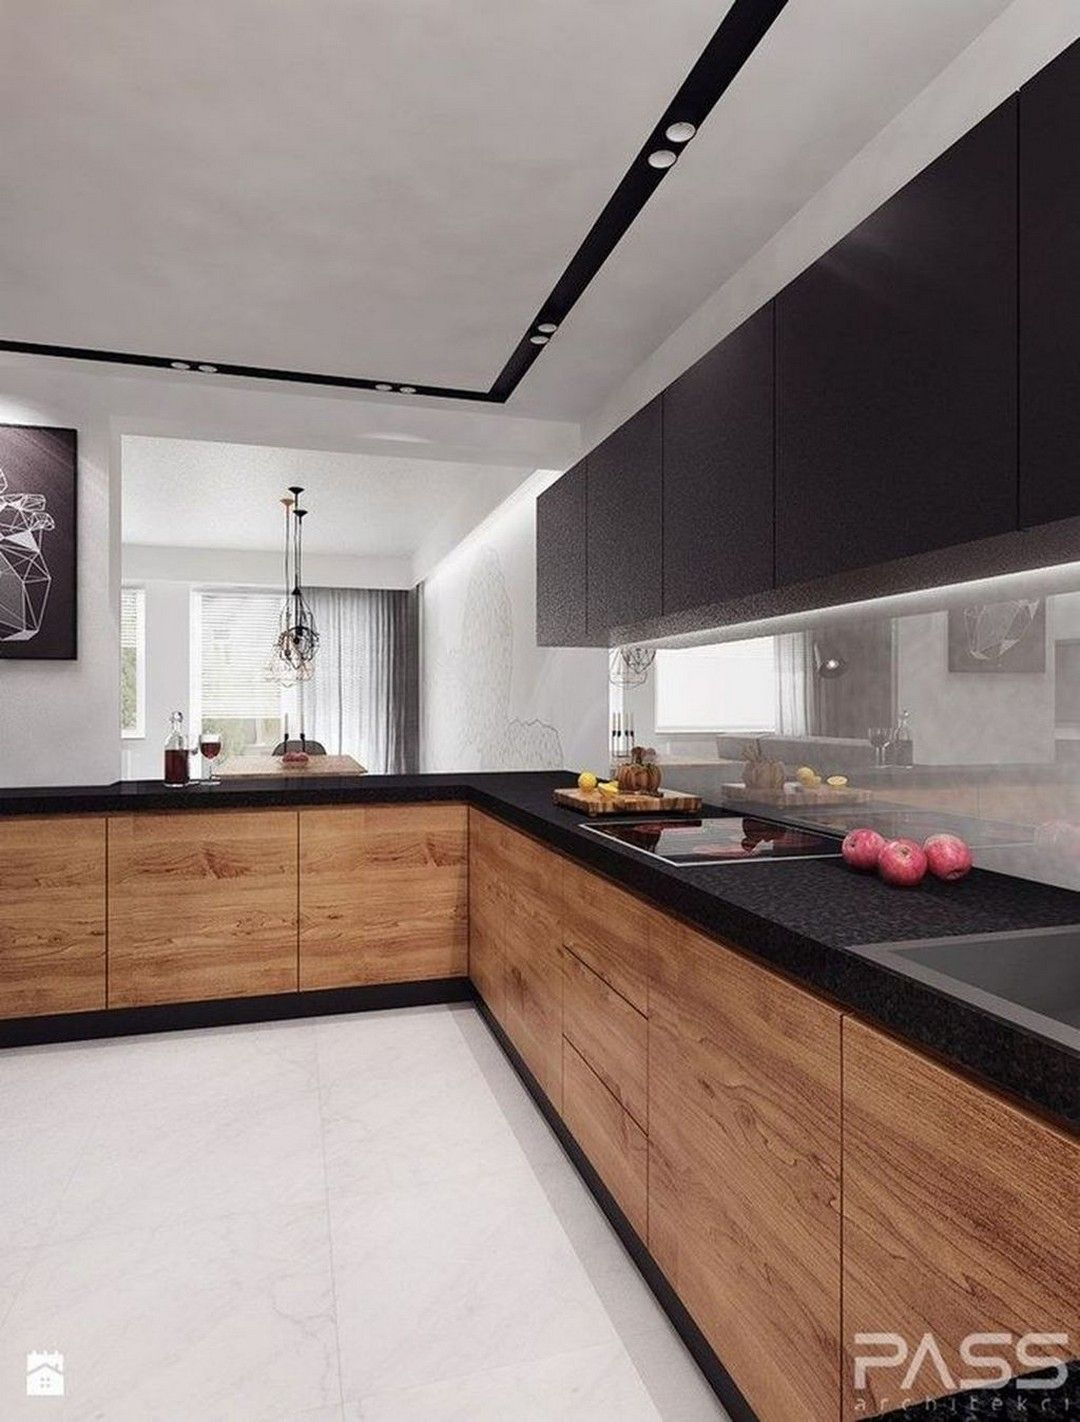 The 39 Best Black Kitchens – Kitchen Trends You Need To See